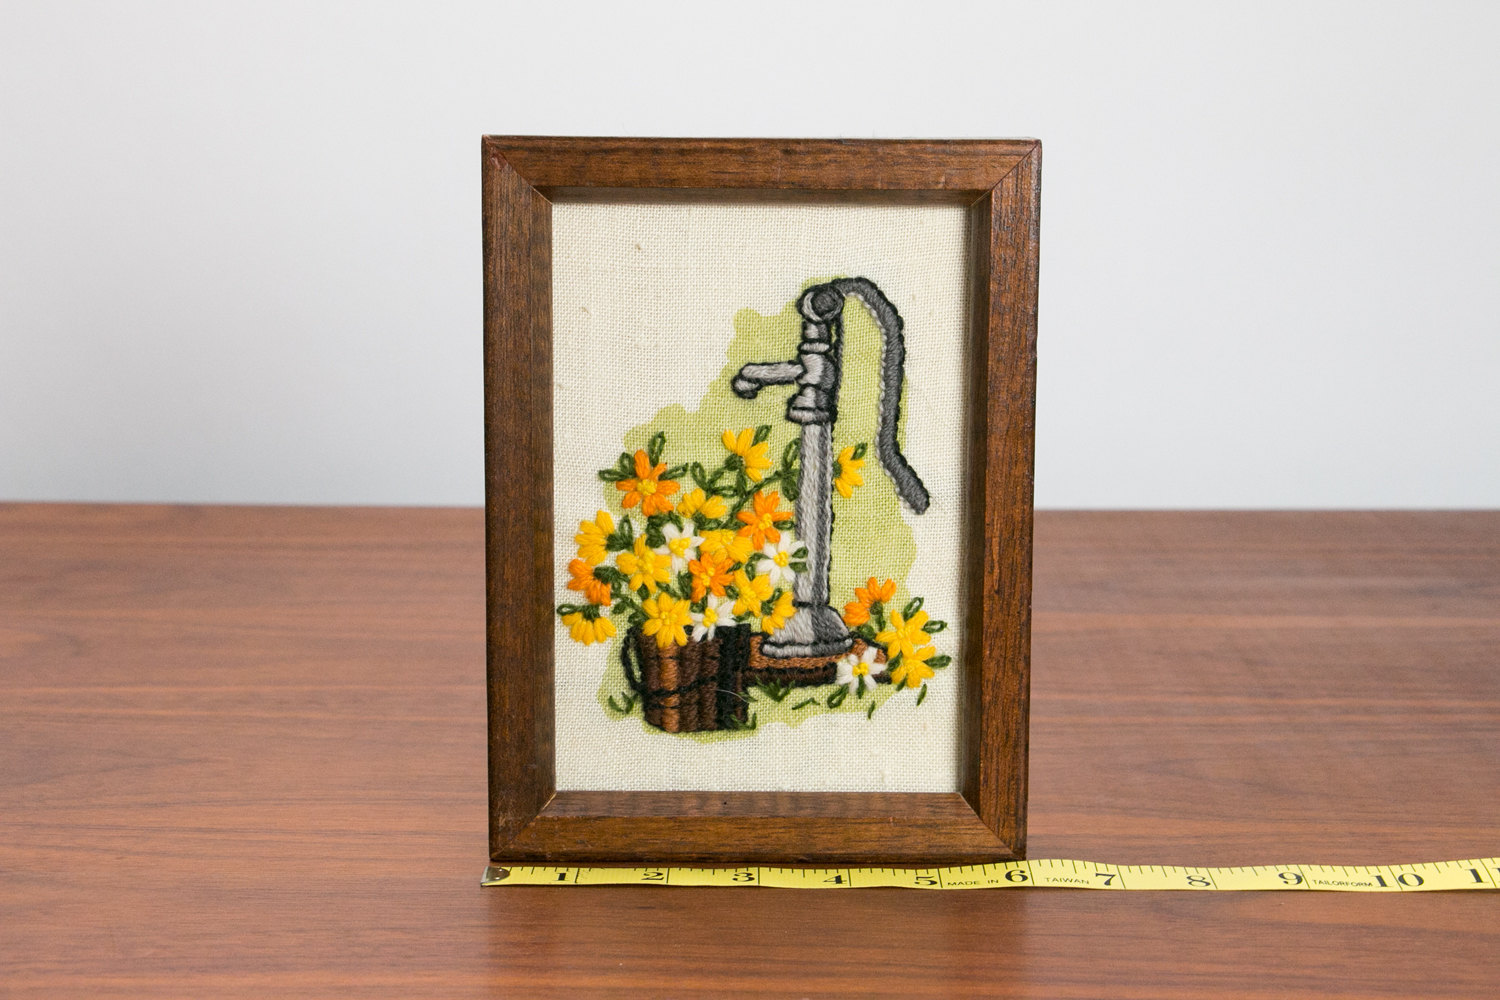 Vintage 1950's Framed Needlepoint of Water Well Pump with Spring Flowers, Basket, Grass - Small, Wood Frame, Mid Century, Retro, Hipster